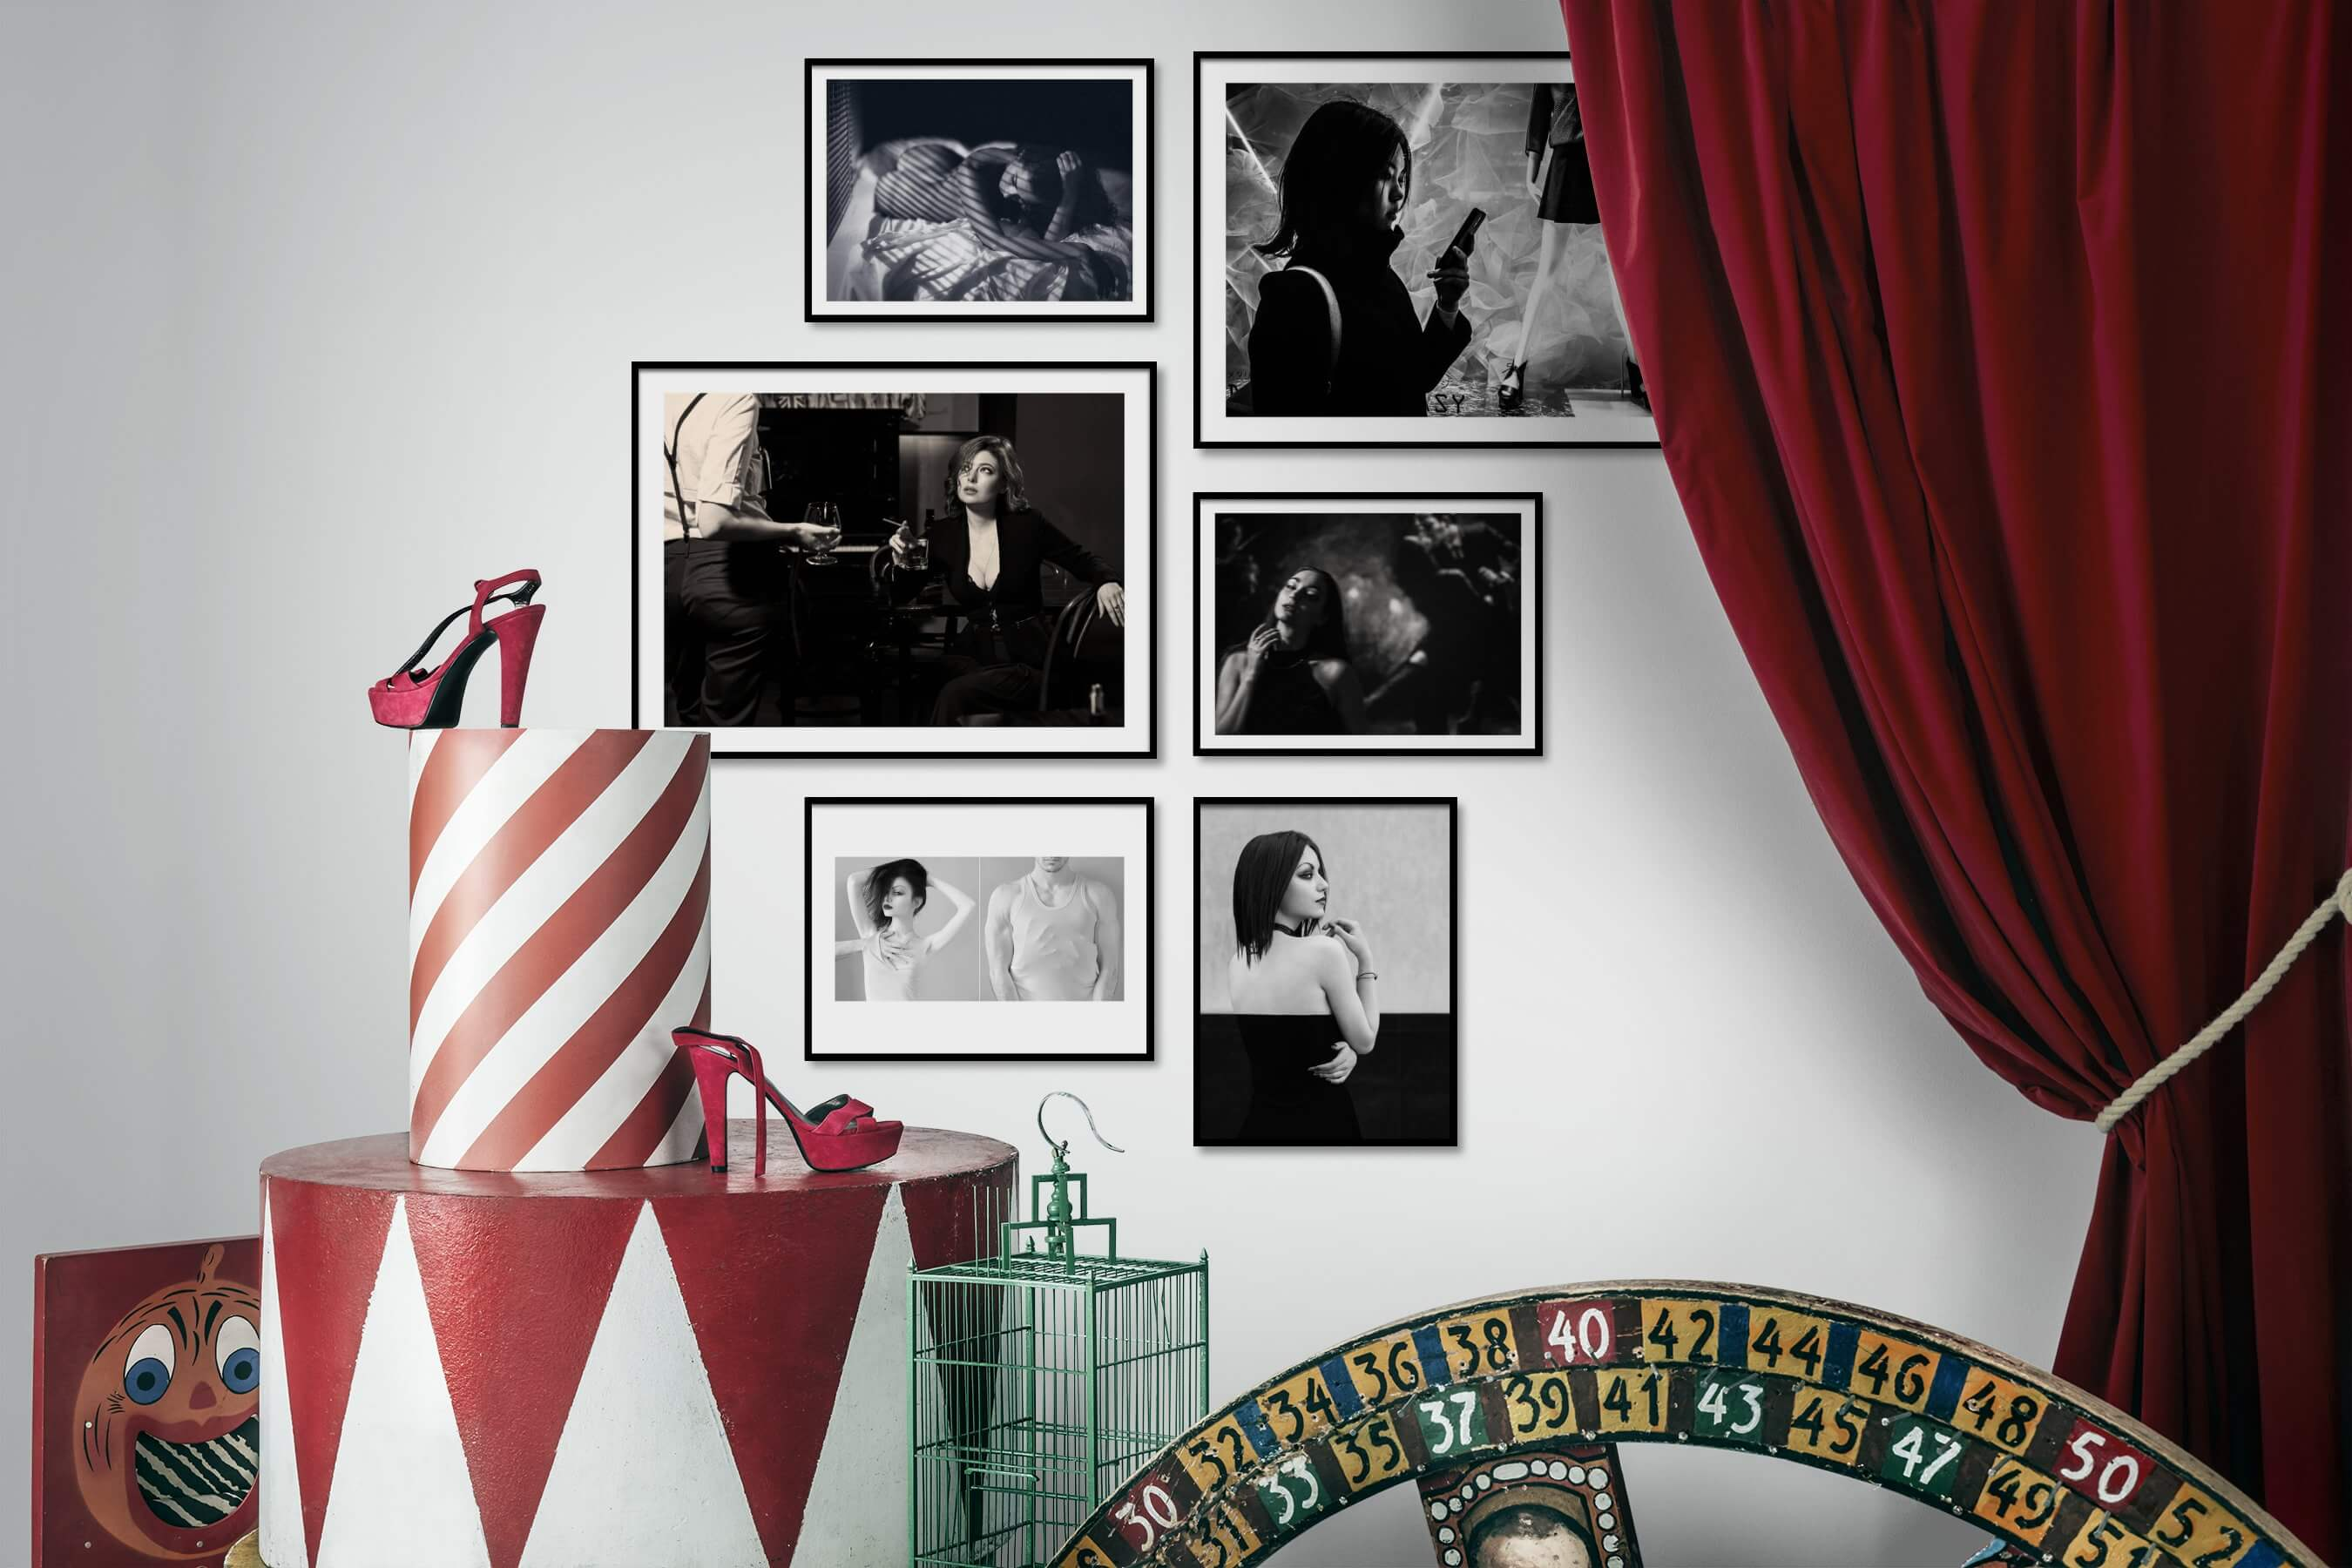 Gallery wall idea with six framed pictures arranged on a wall depicting Fashion & Beauty, Black & White, Vintage, and Artsy